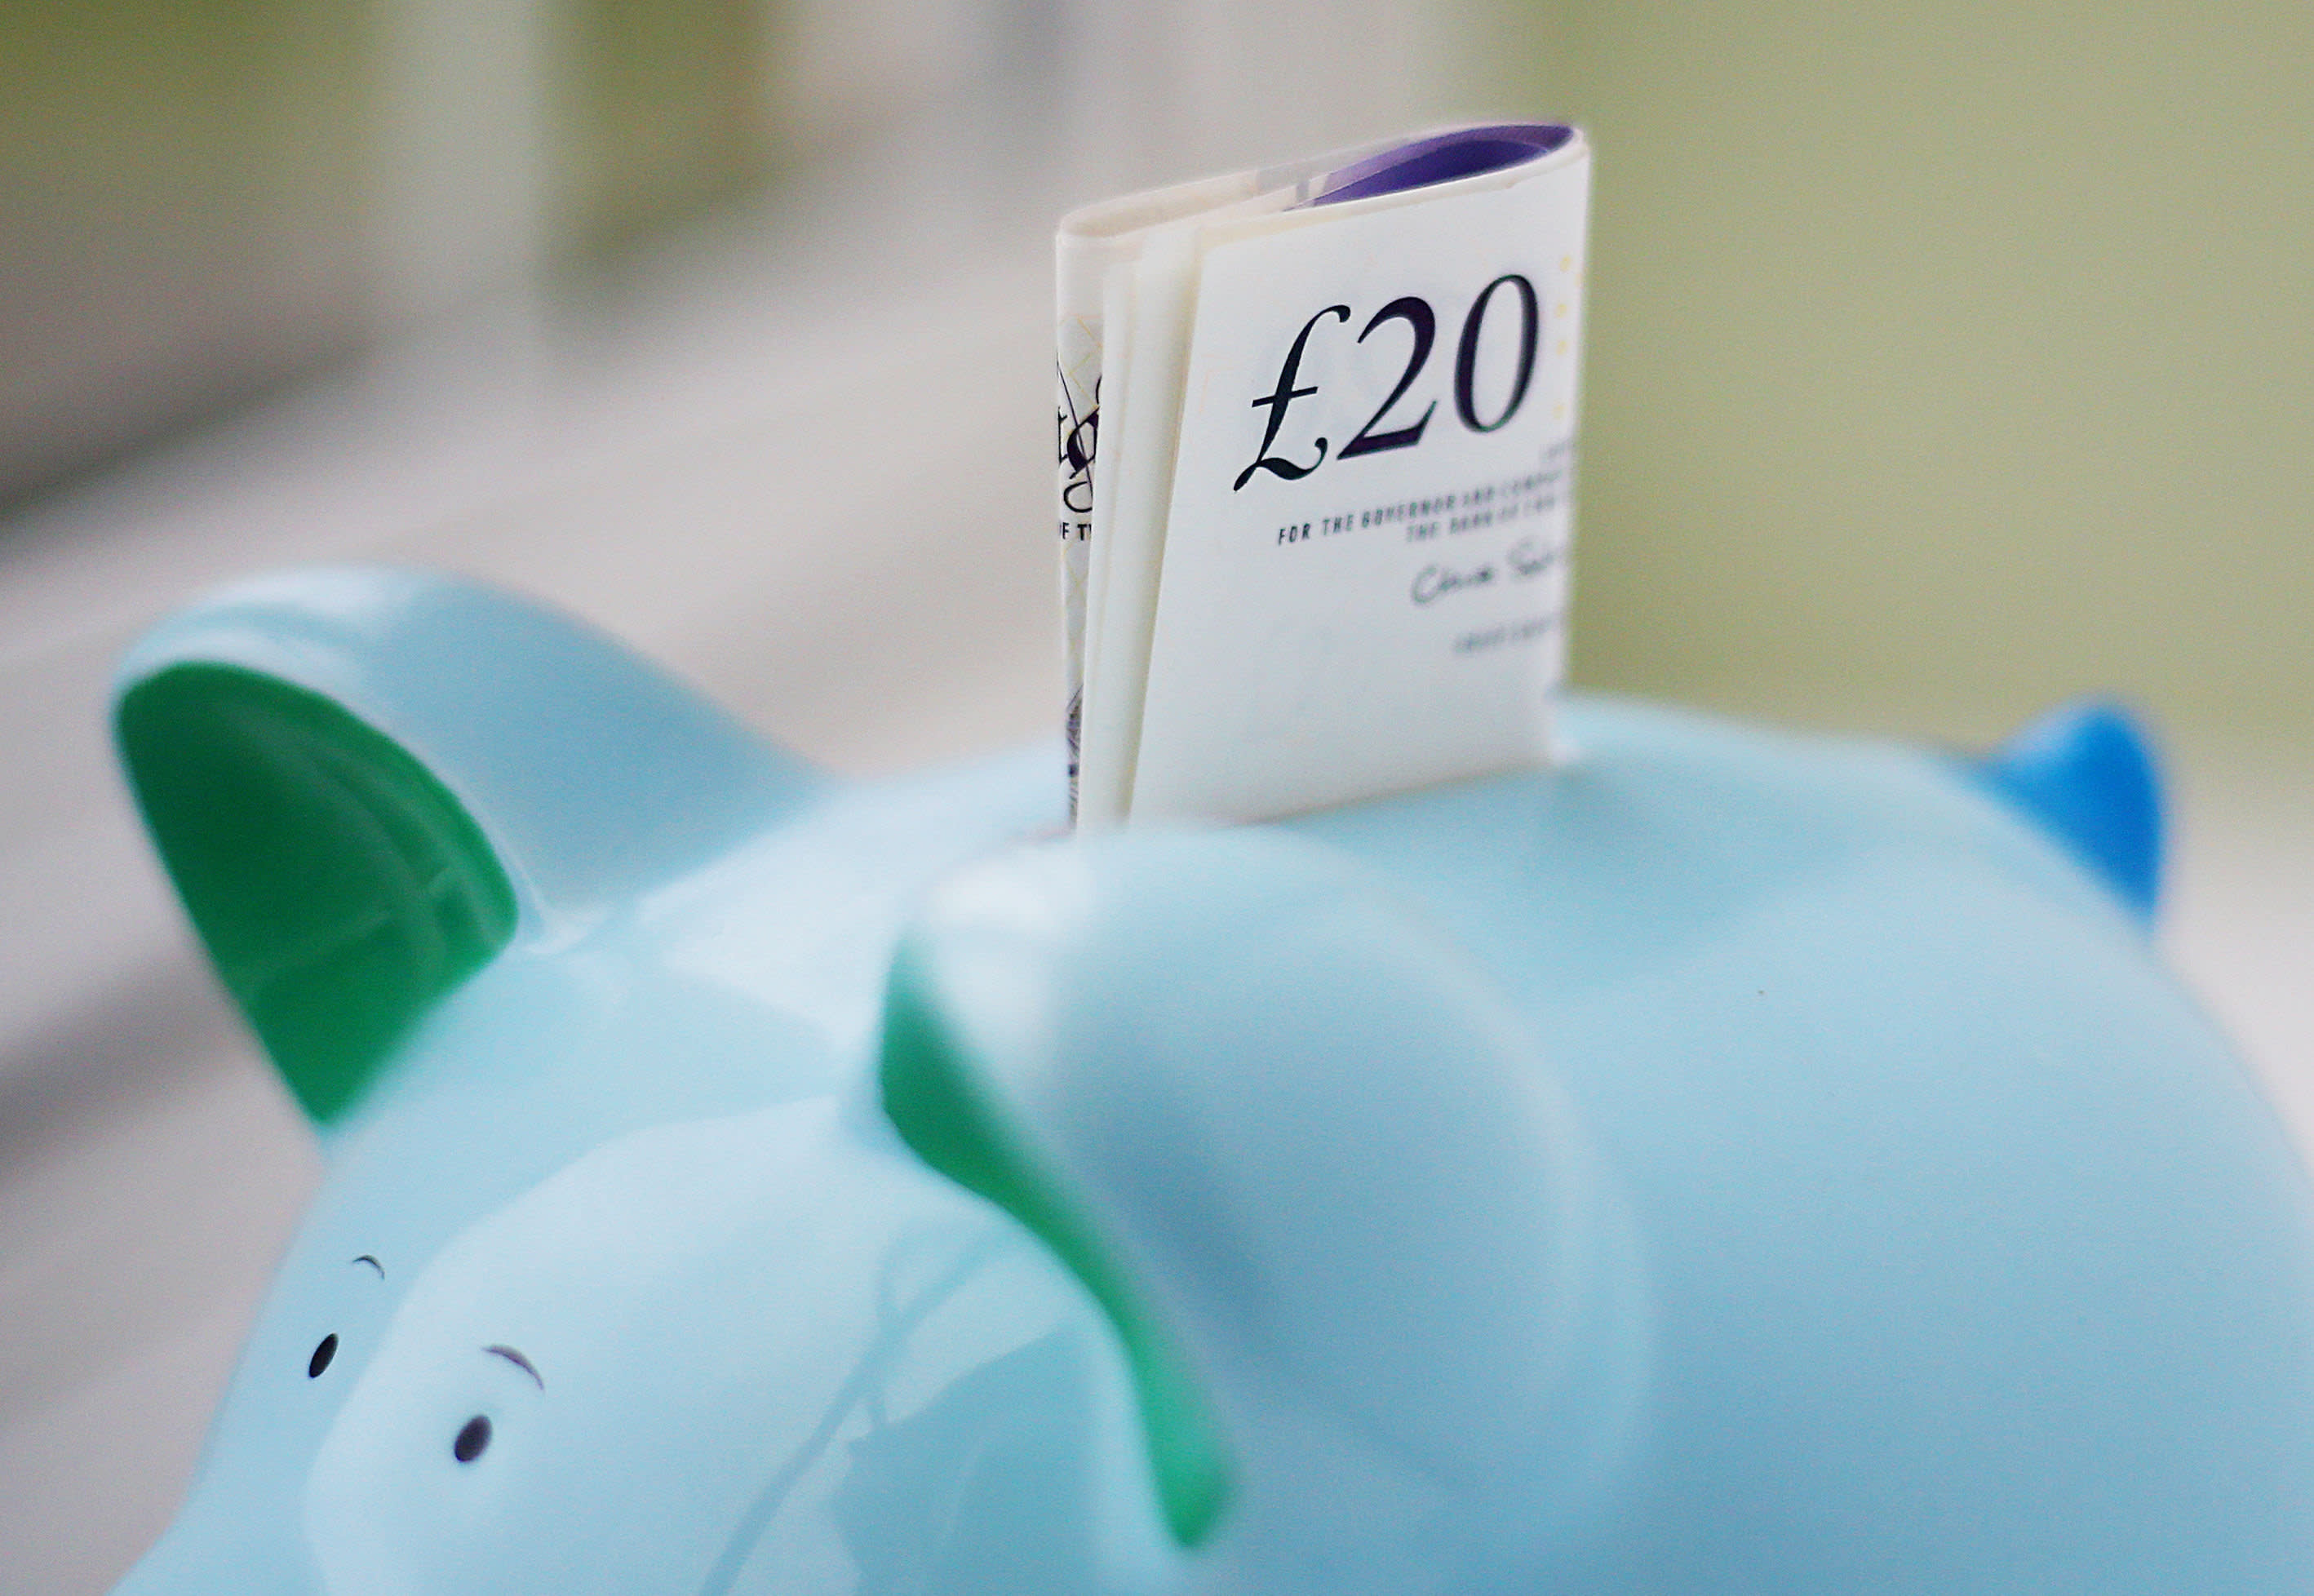 Pension freedoms expected to generate £19.2bn in tax